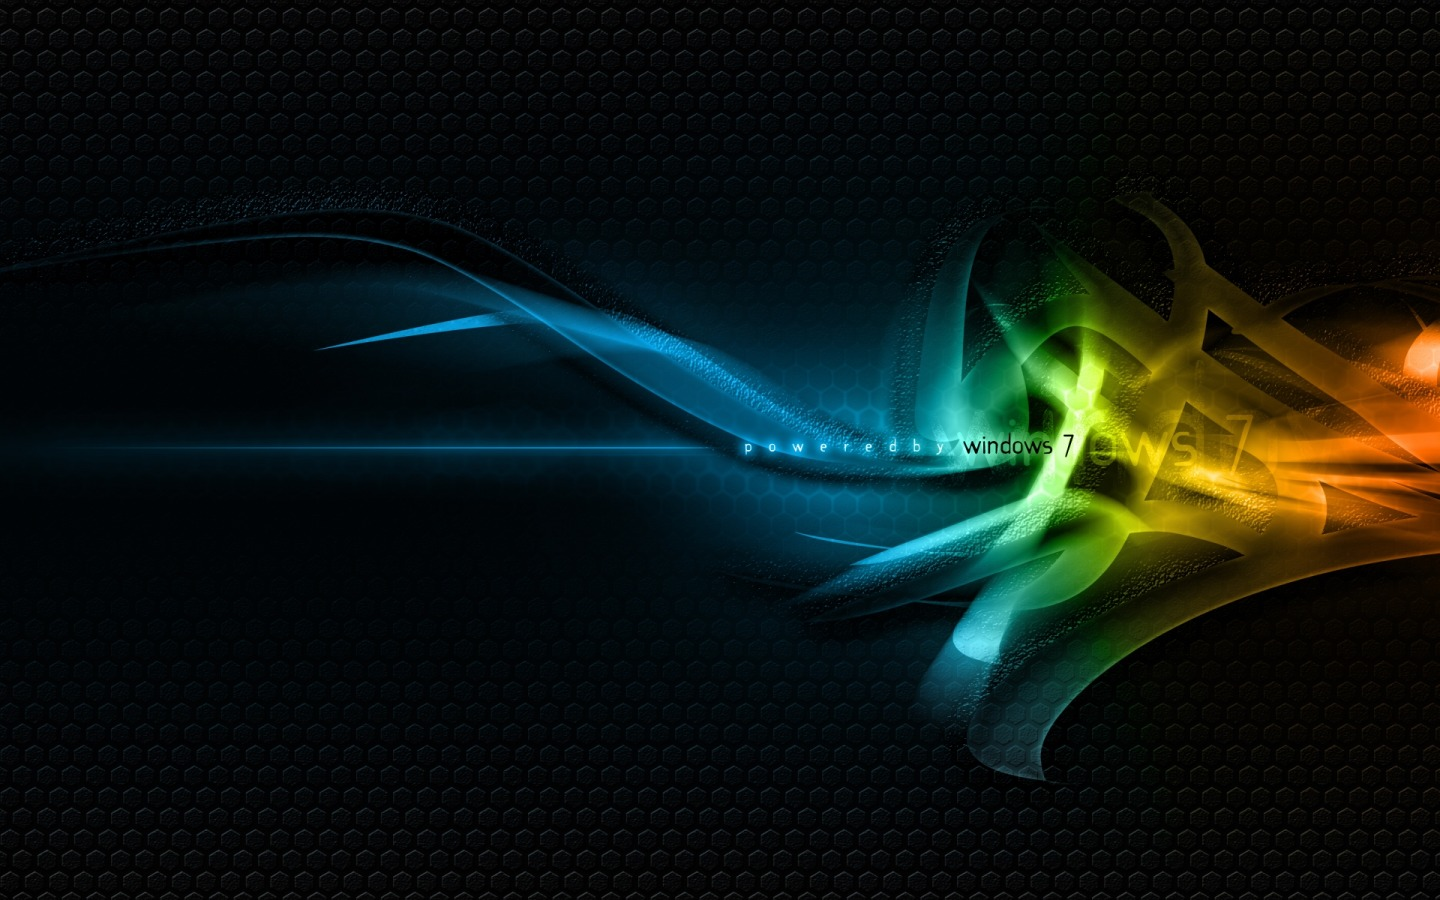 High Definition Wallpapers Windows 7 Black Wallpaper 1440x900